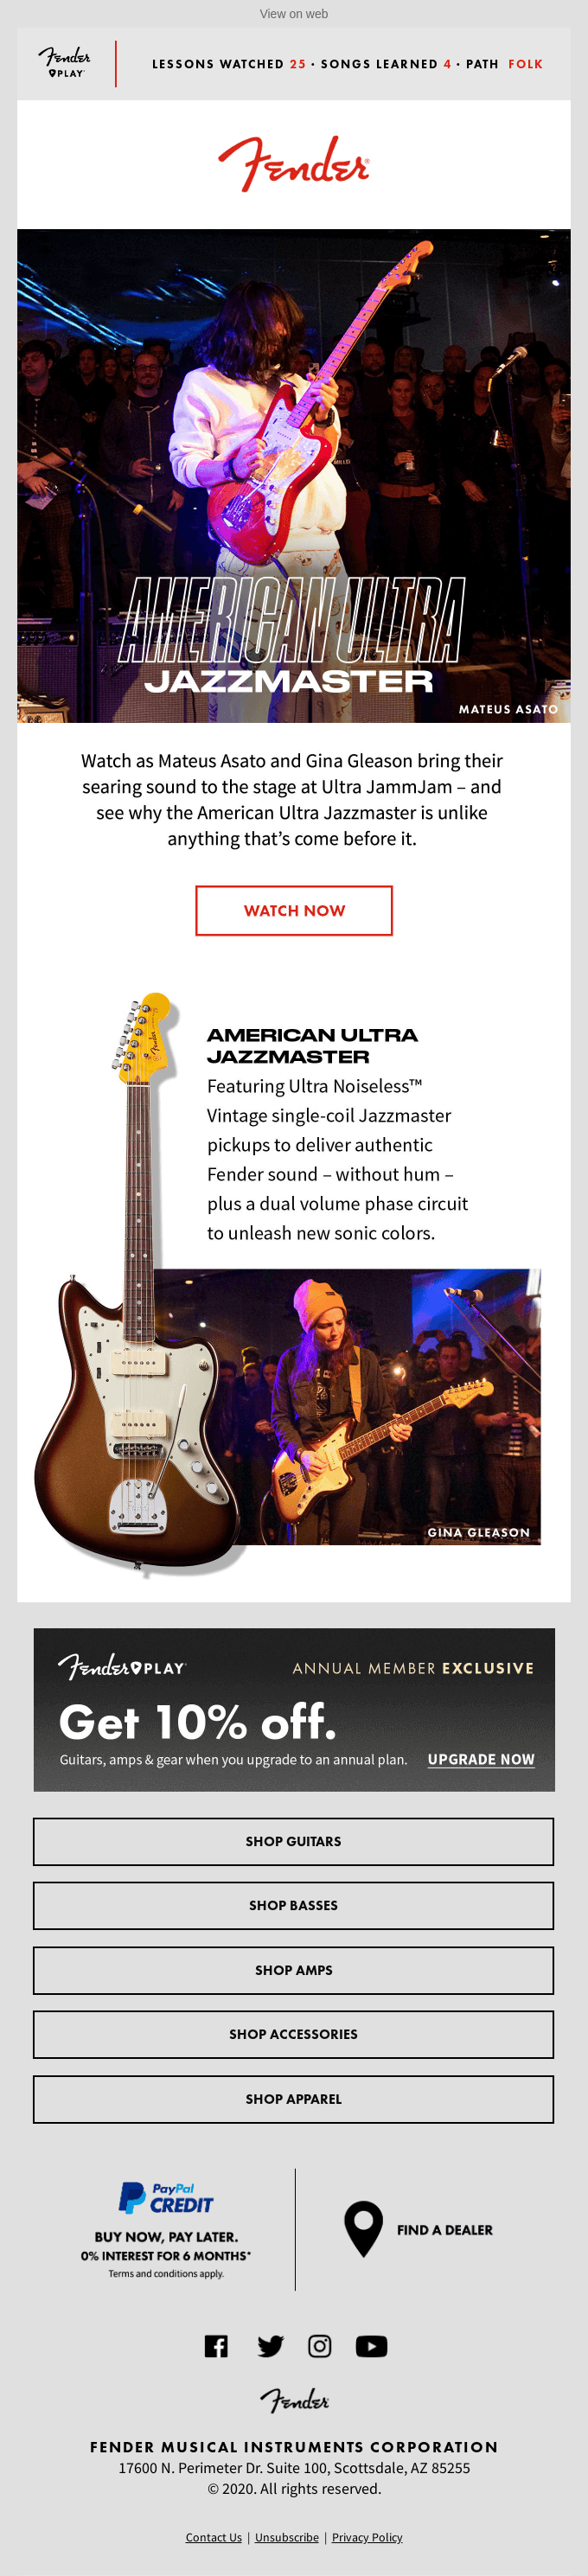 Discover the Ultra Jazzmaster